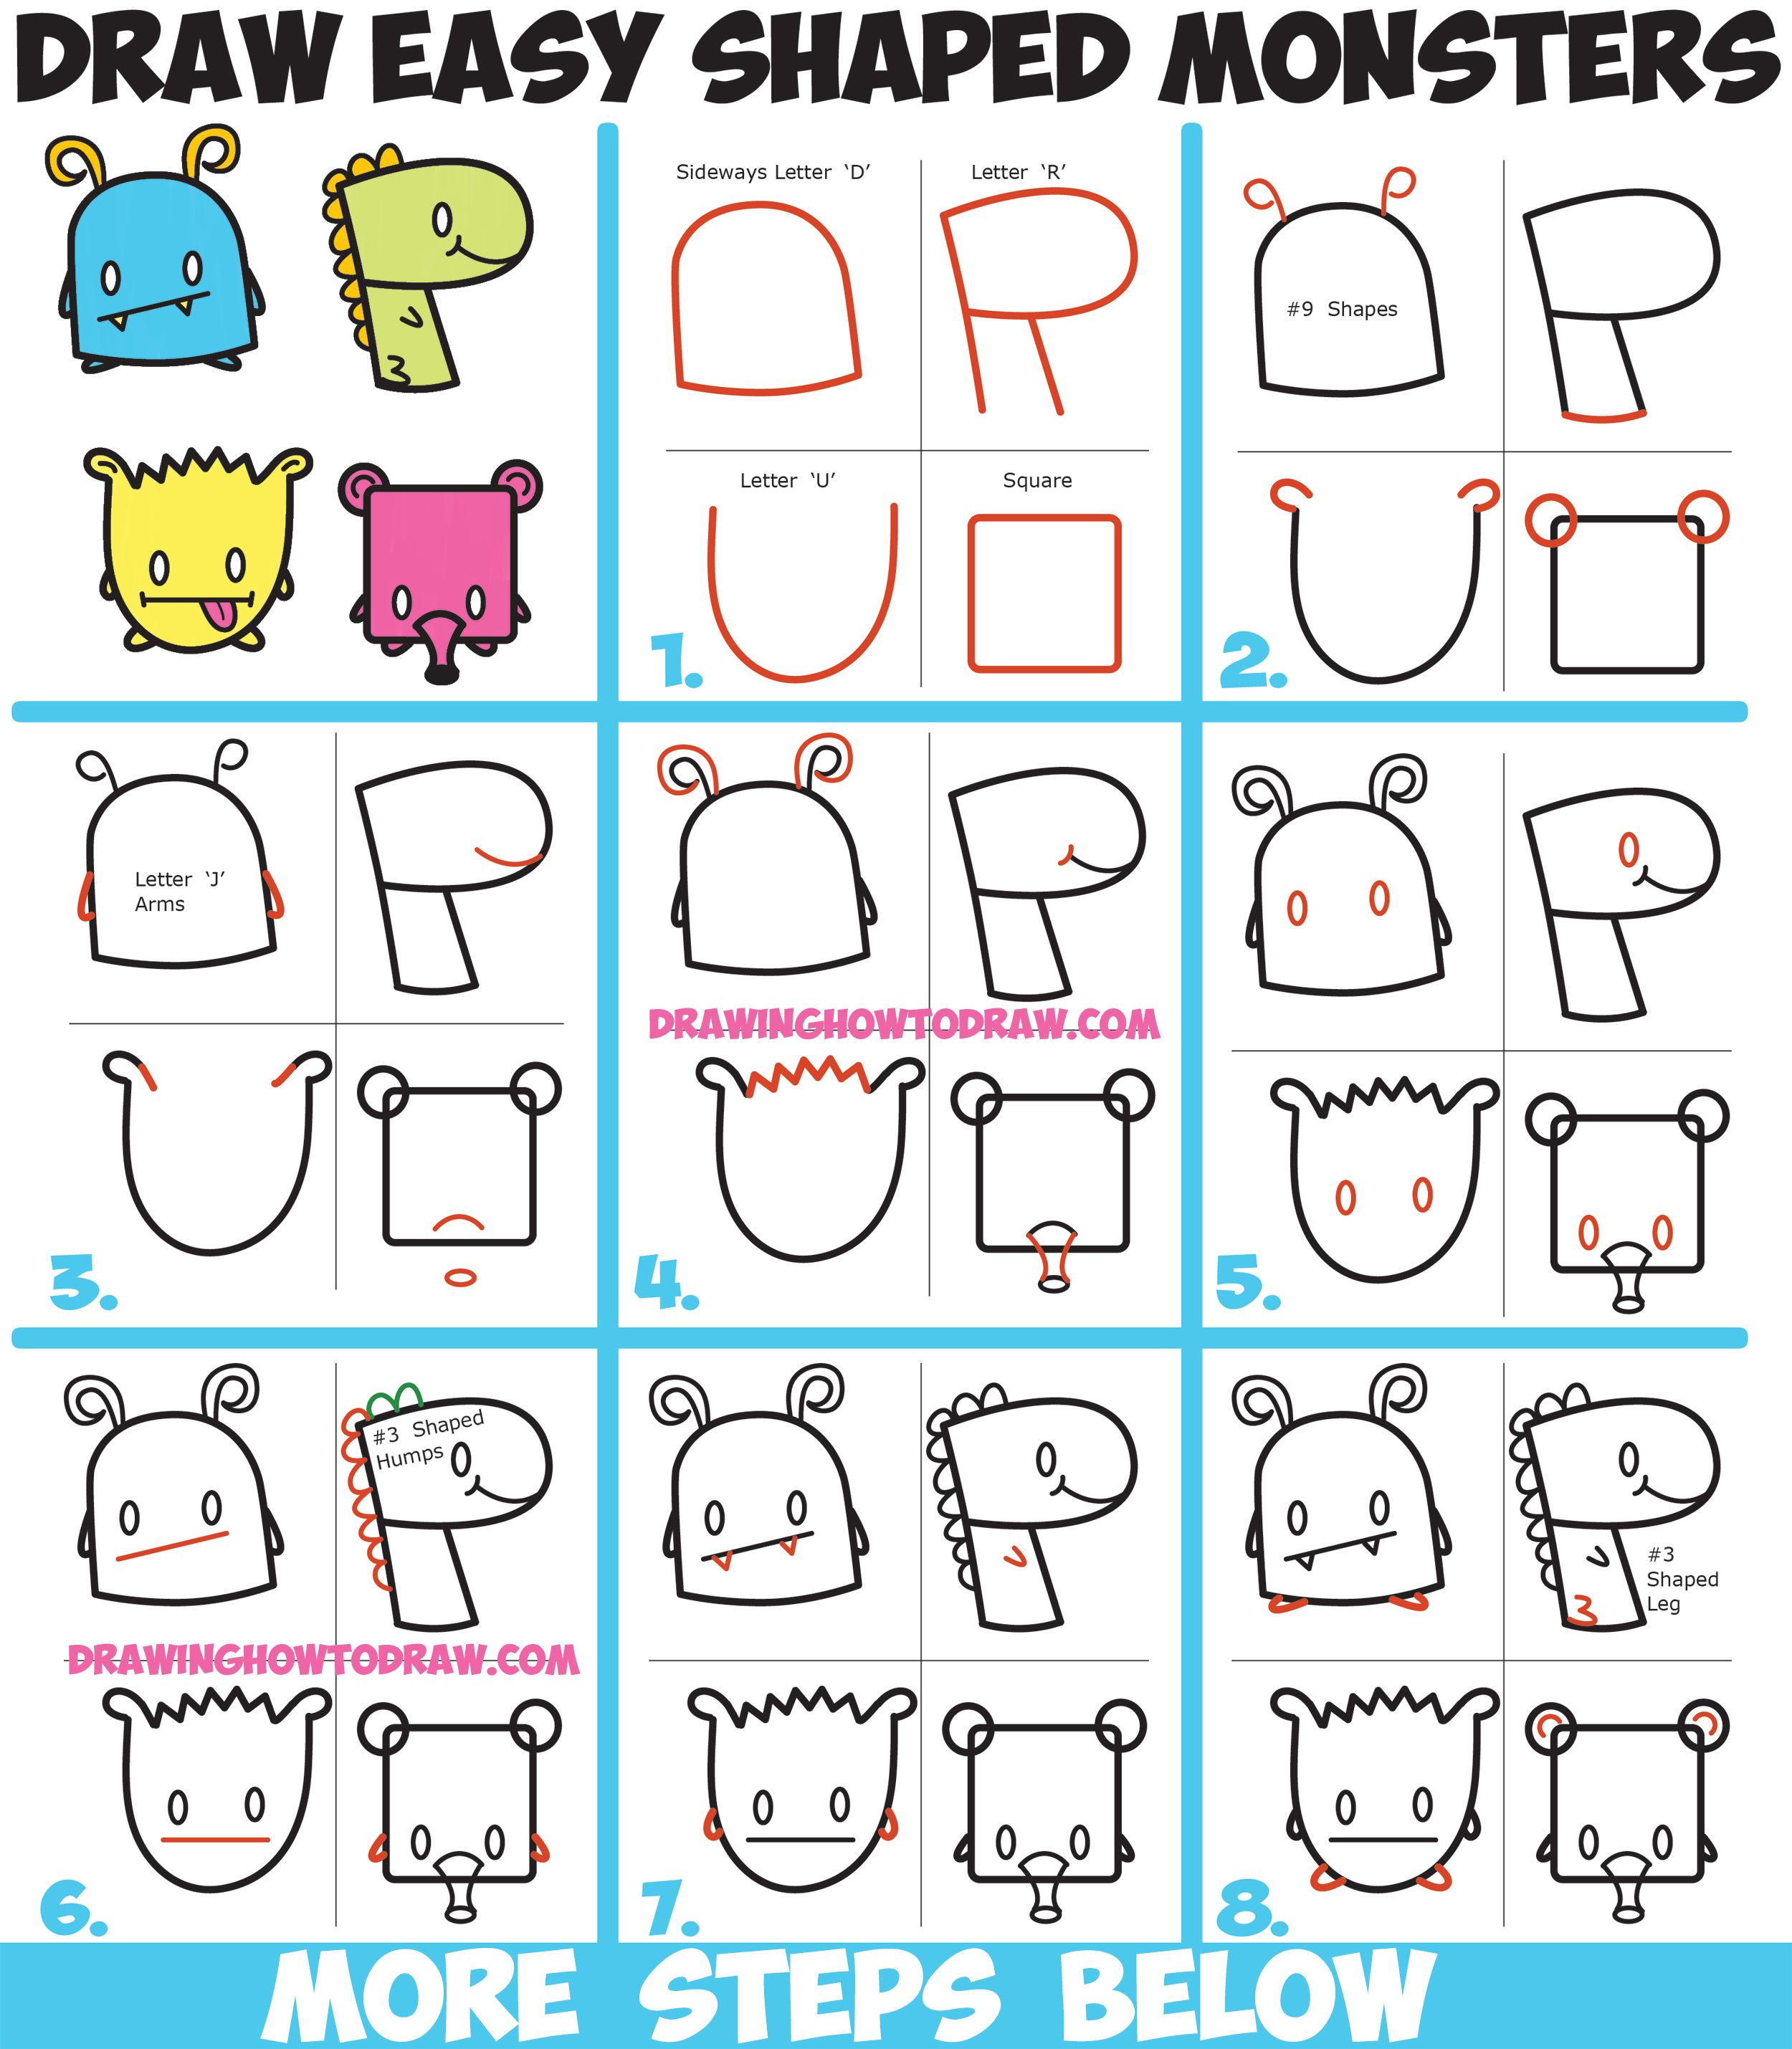 How To Draw Cute Cartoon Monsters From Simple Shapes Letters And Numbers For Kids How To Draw Step By Step Drawing Tutorials Cartoon Monsters Simple Cartoon Drawing Tutorials For Kids